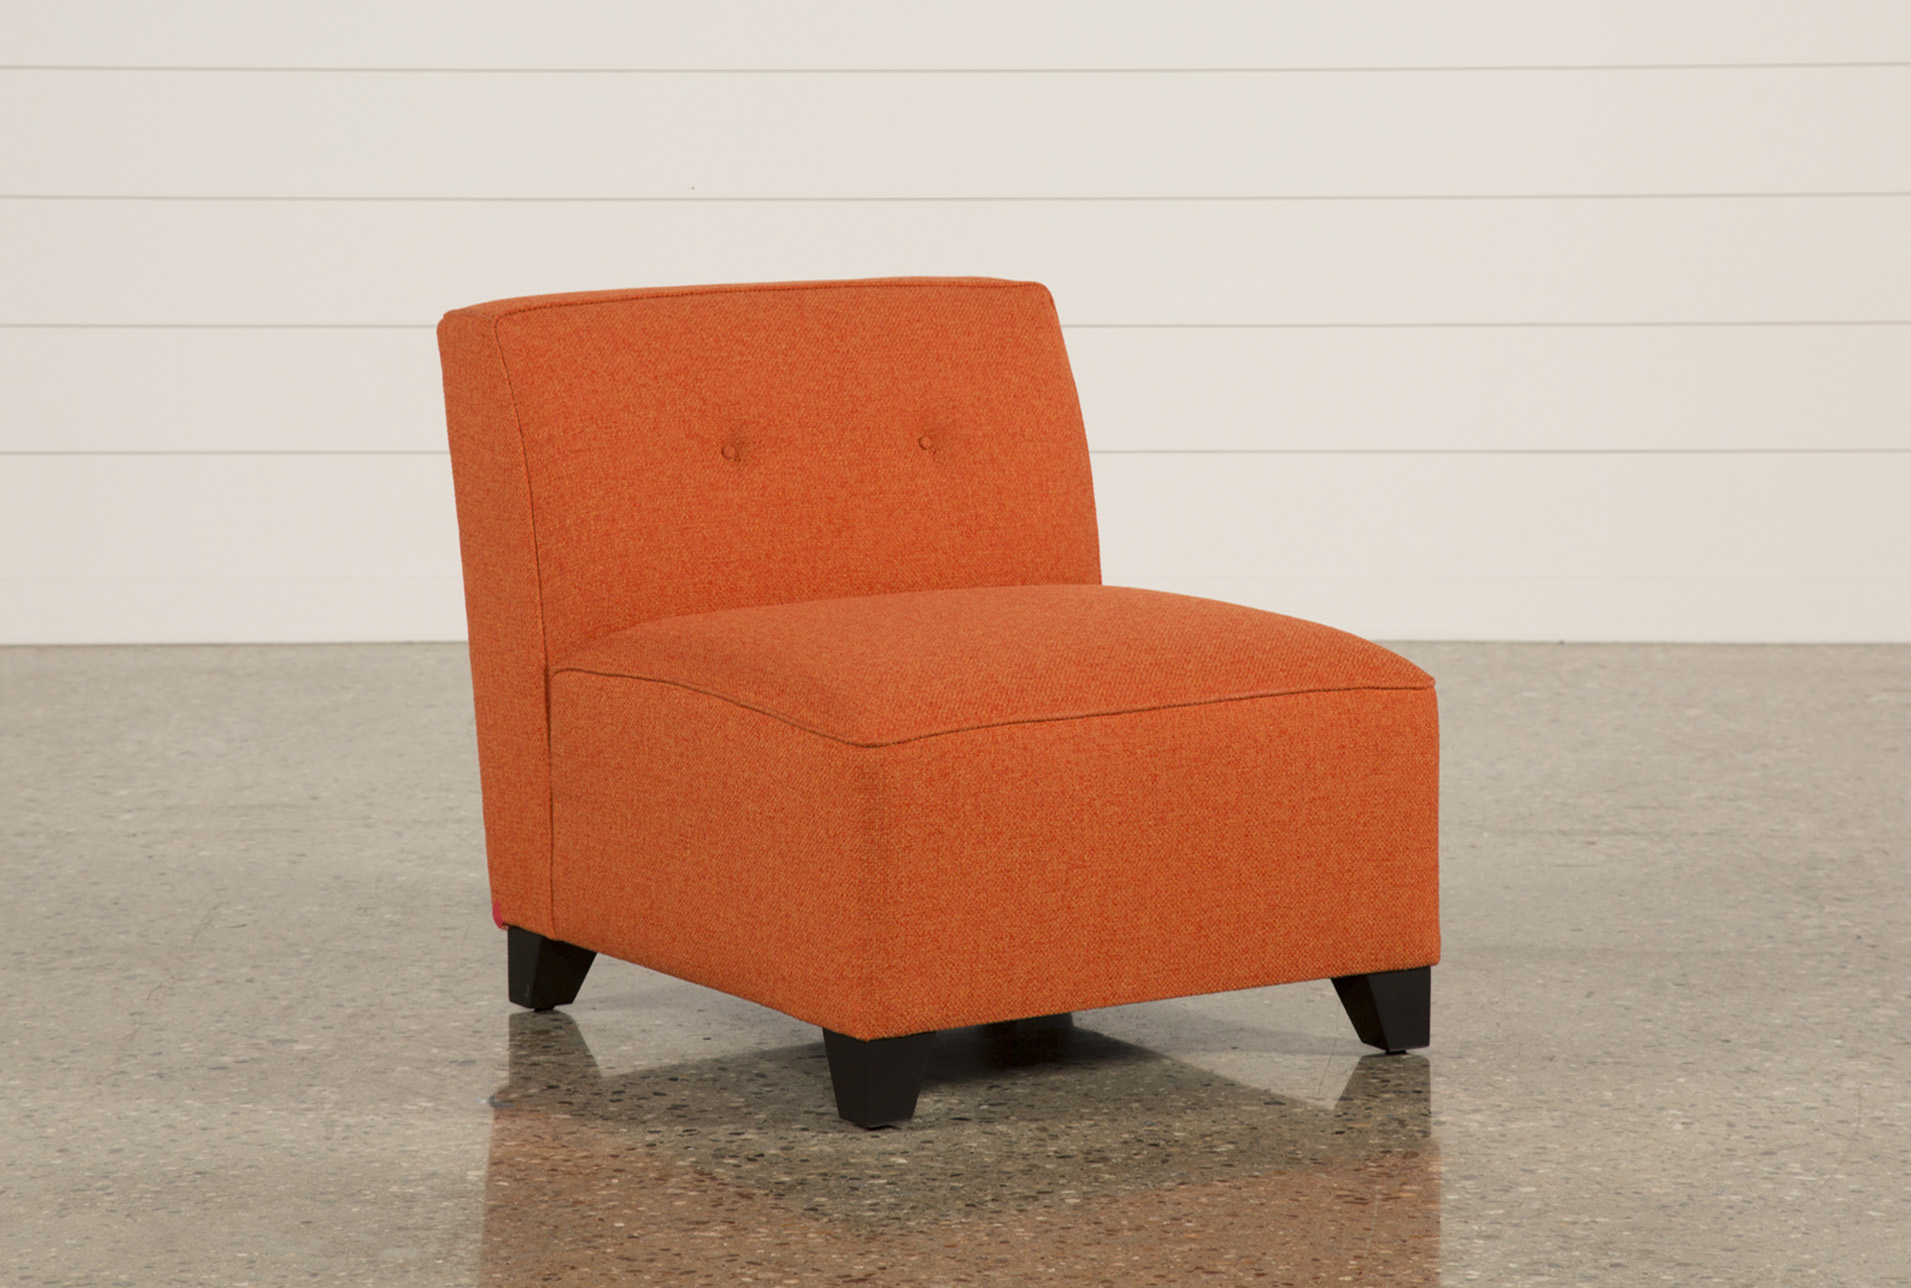 Benton Armless Chair (Qty: 1) Has Been Successfully Added To Your Cart.